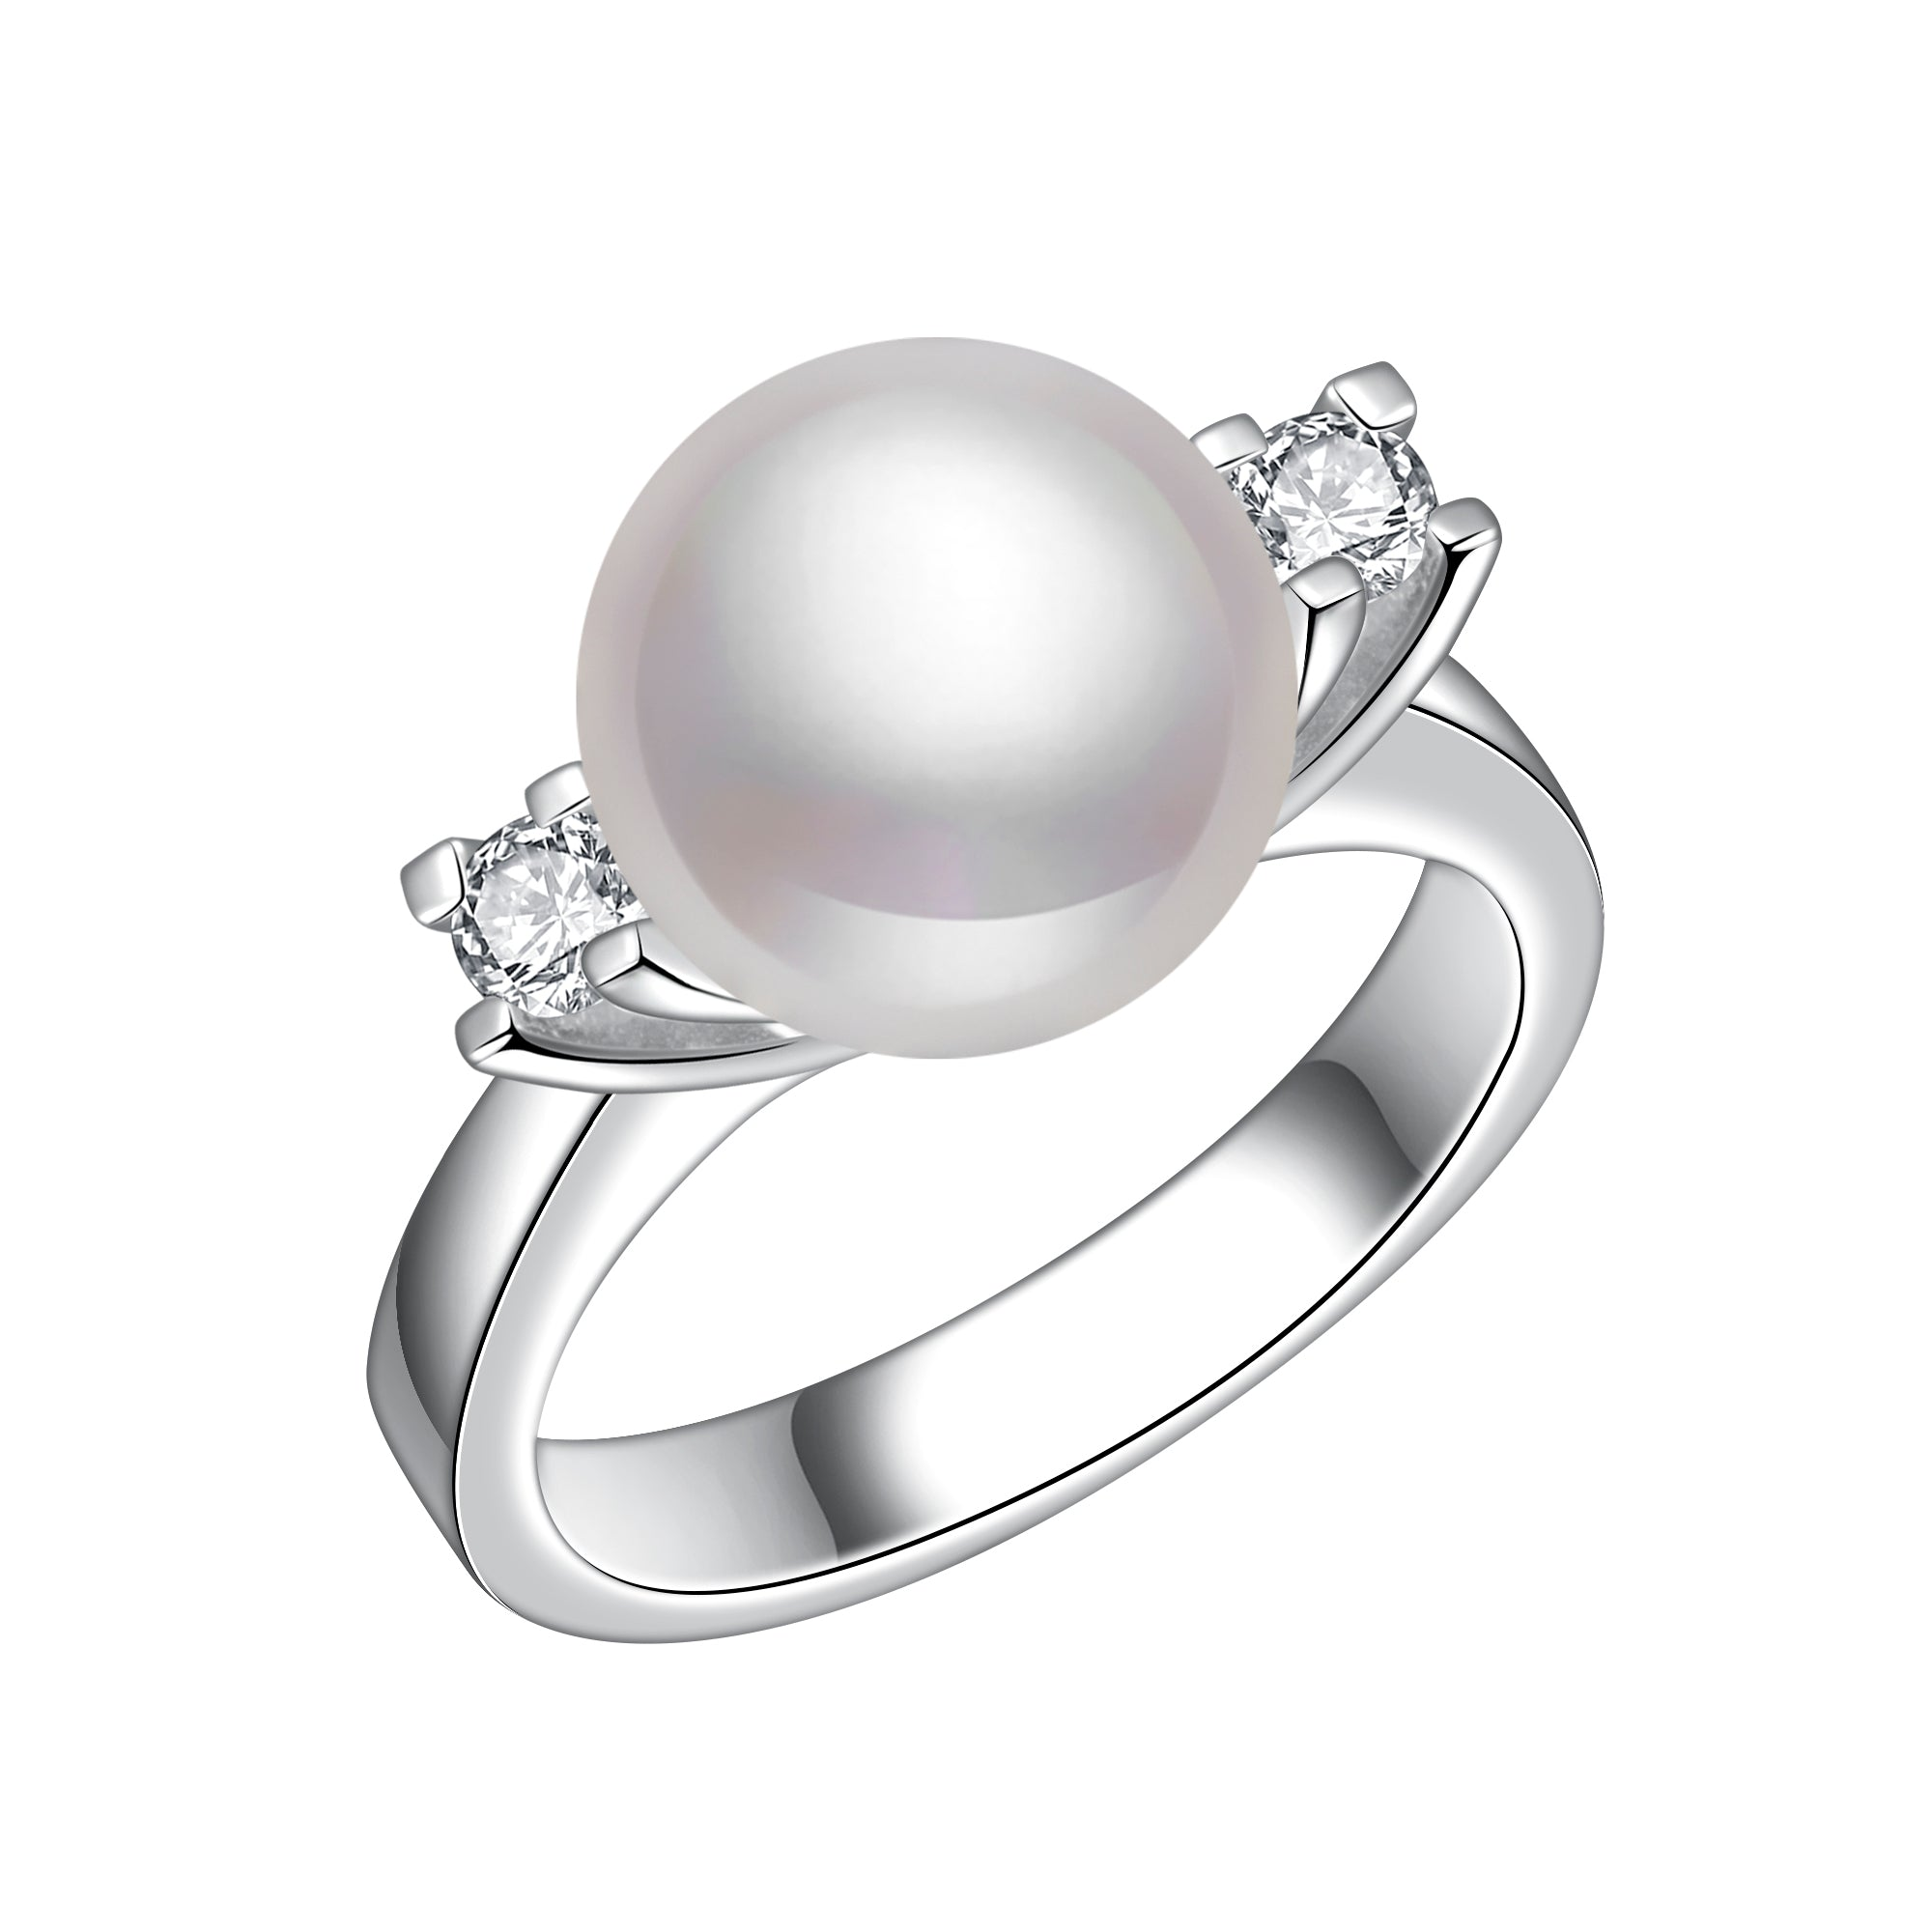 engagement gold india ring kalyan diamond rings company pearl com online shopping candere womens white jewellery a jewellers jolie